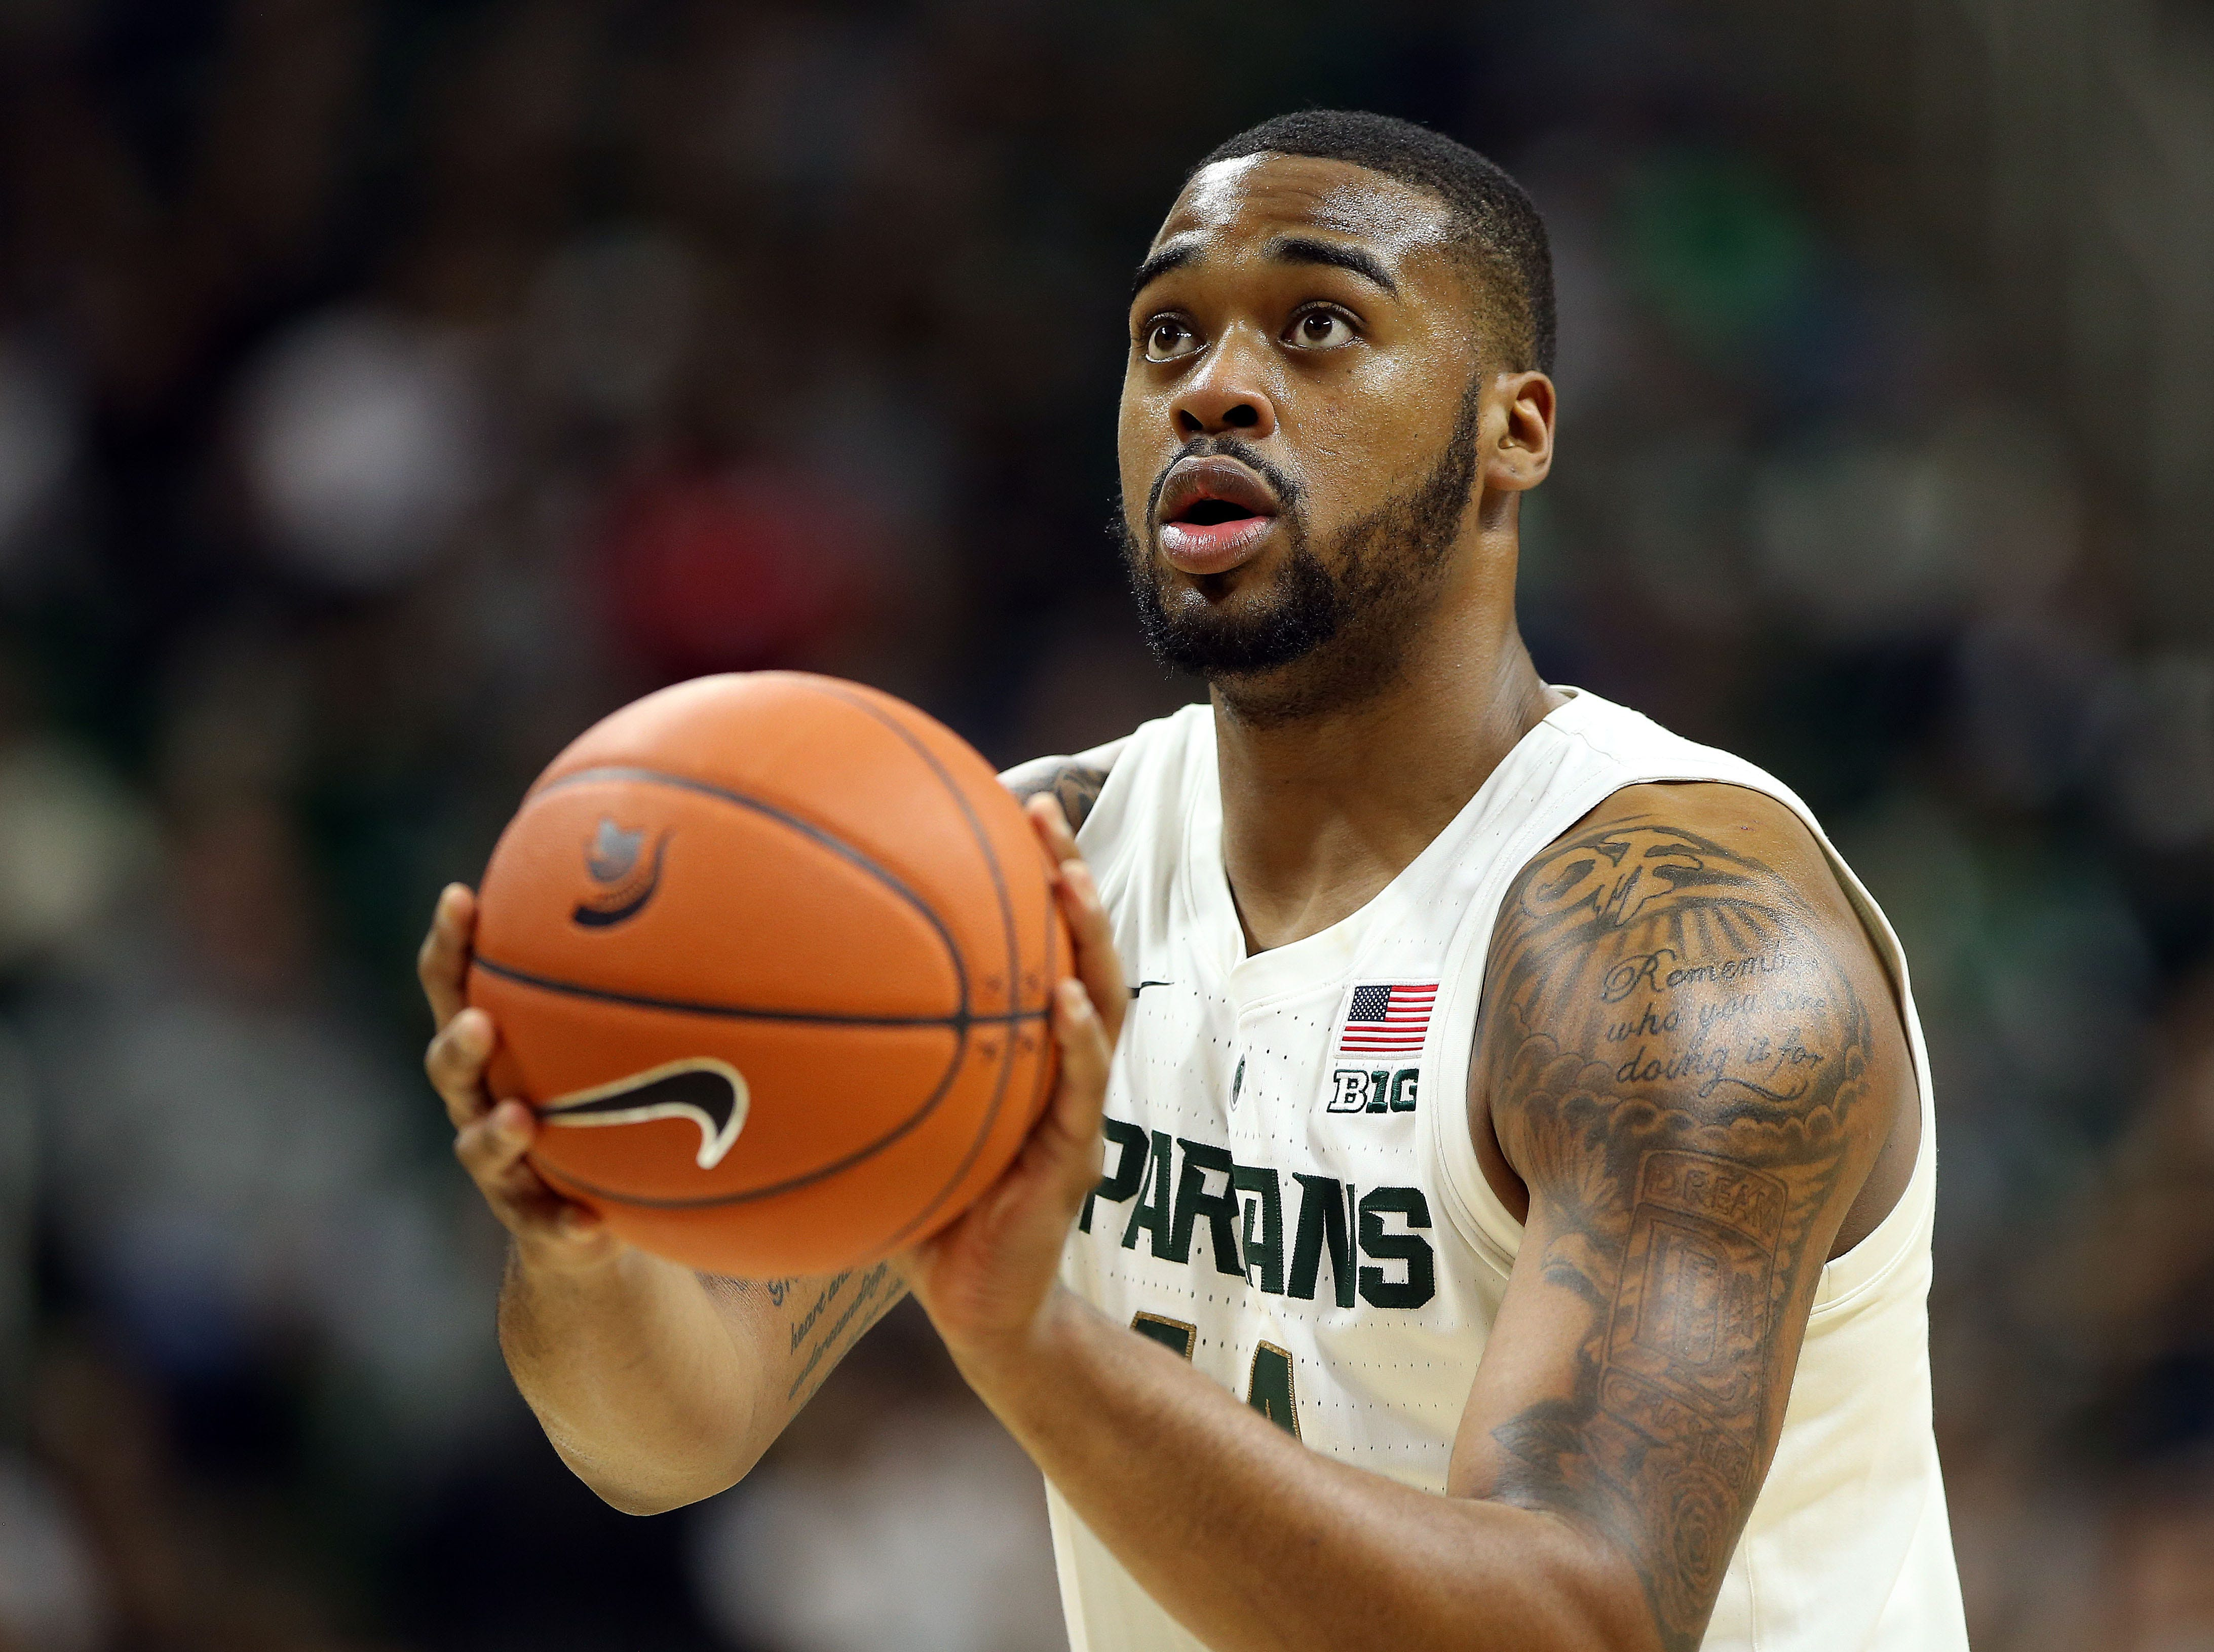 Nov 11, 2018; East Lansing, MI, USA; Michigan State Spartans forward Nick Ward (44) attempts a free throw during the second half of a game against the Florida Gulf Coast Eagles at the Breslin Center. Mandatory Credit: Mike Carter-USA TODAY Sports